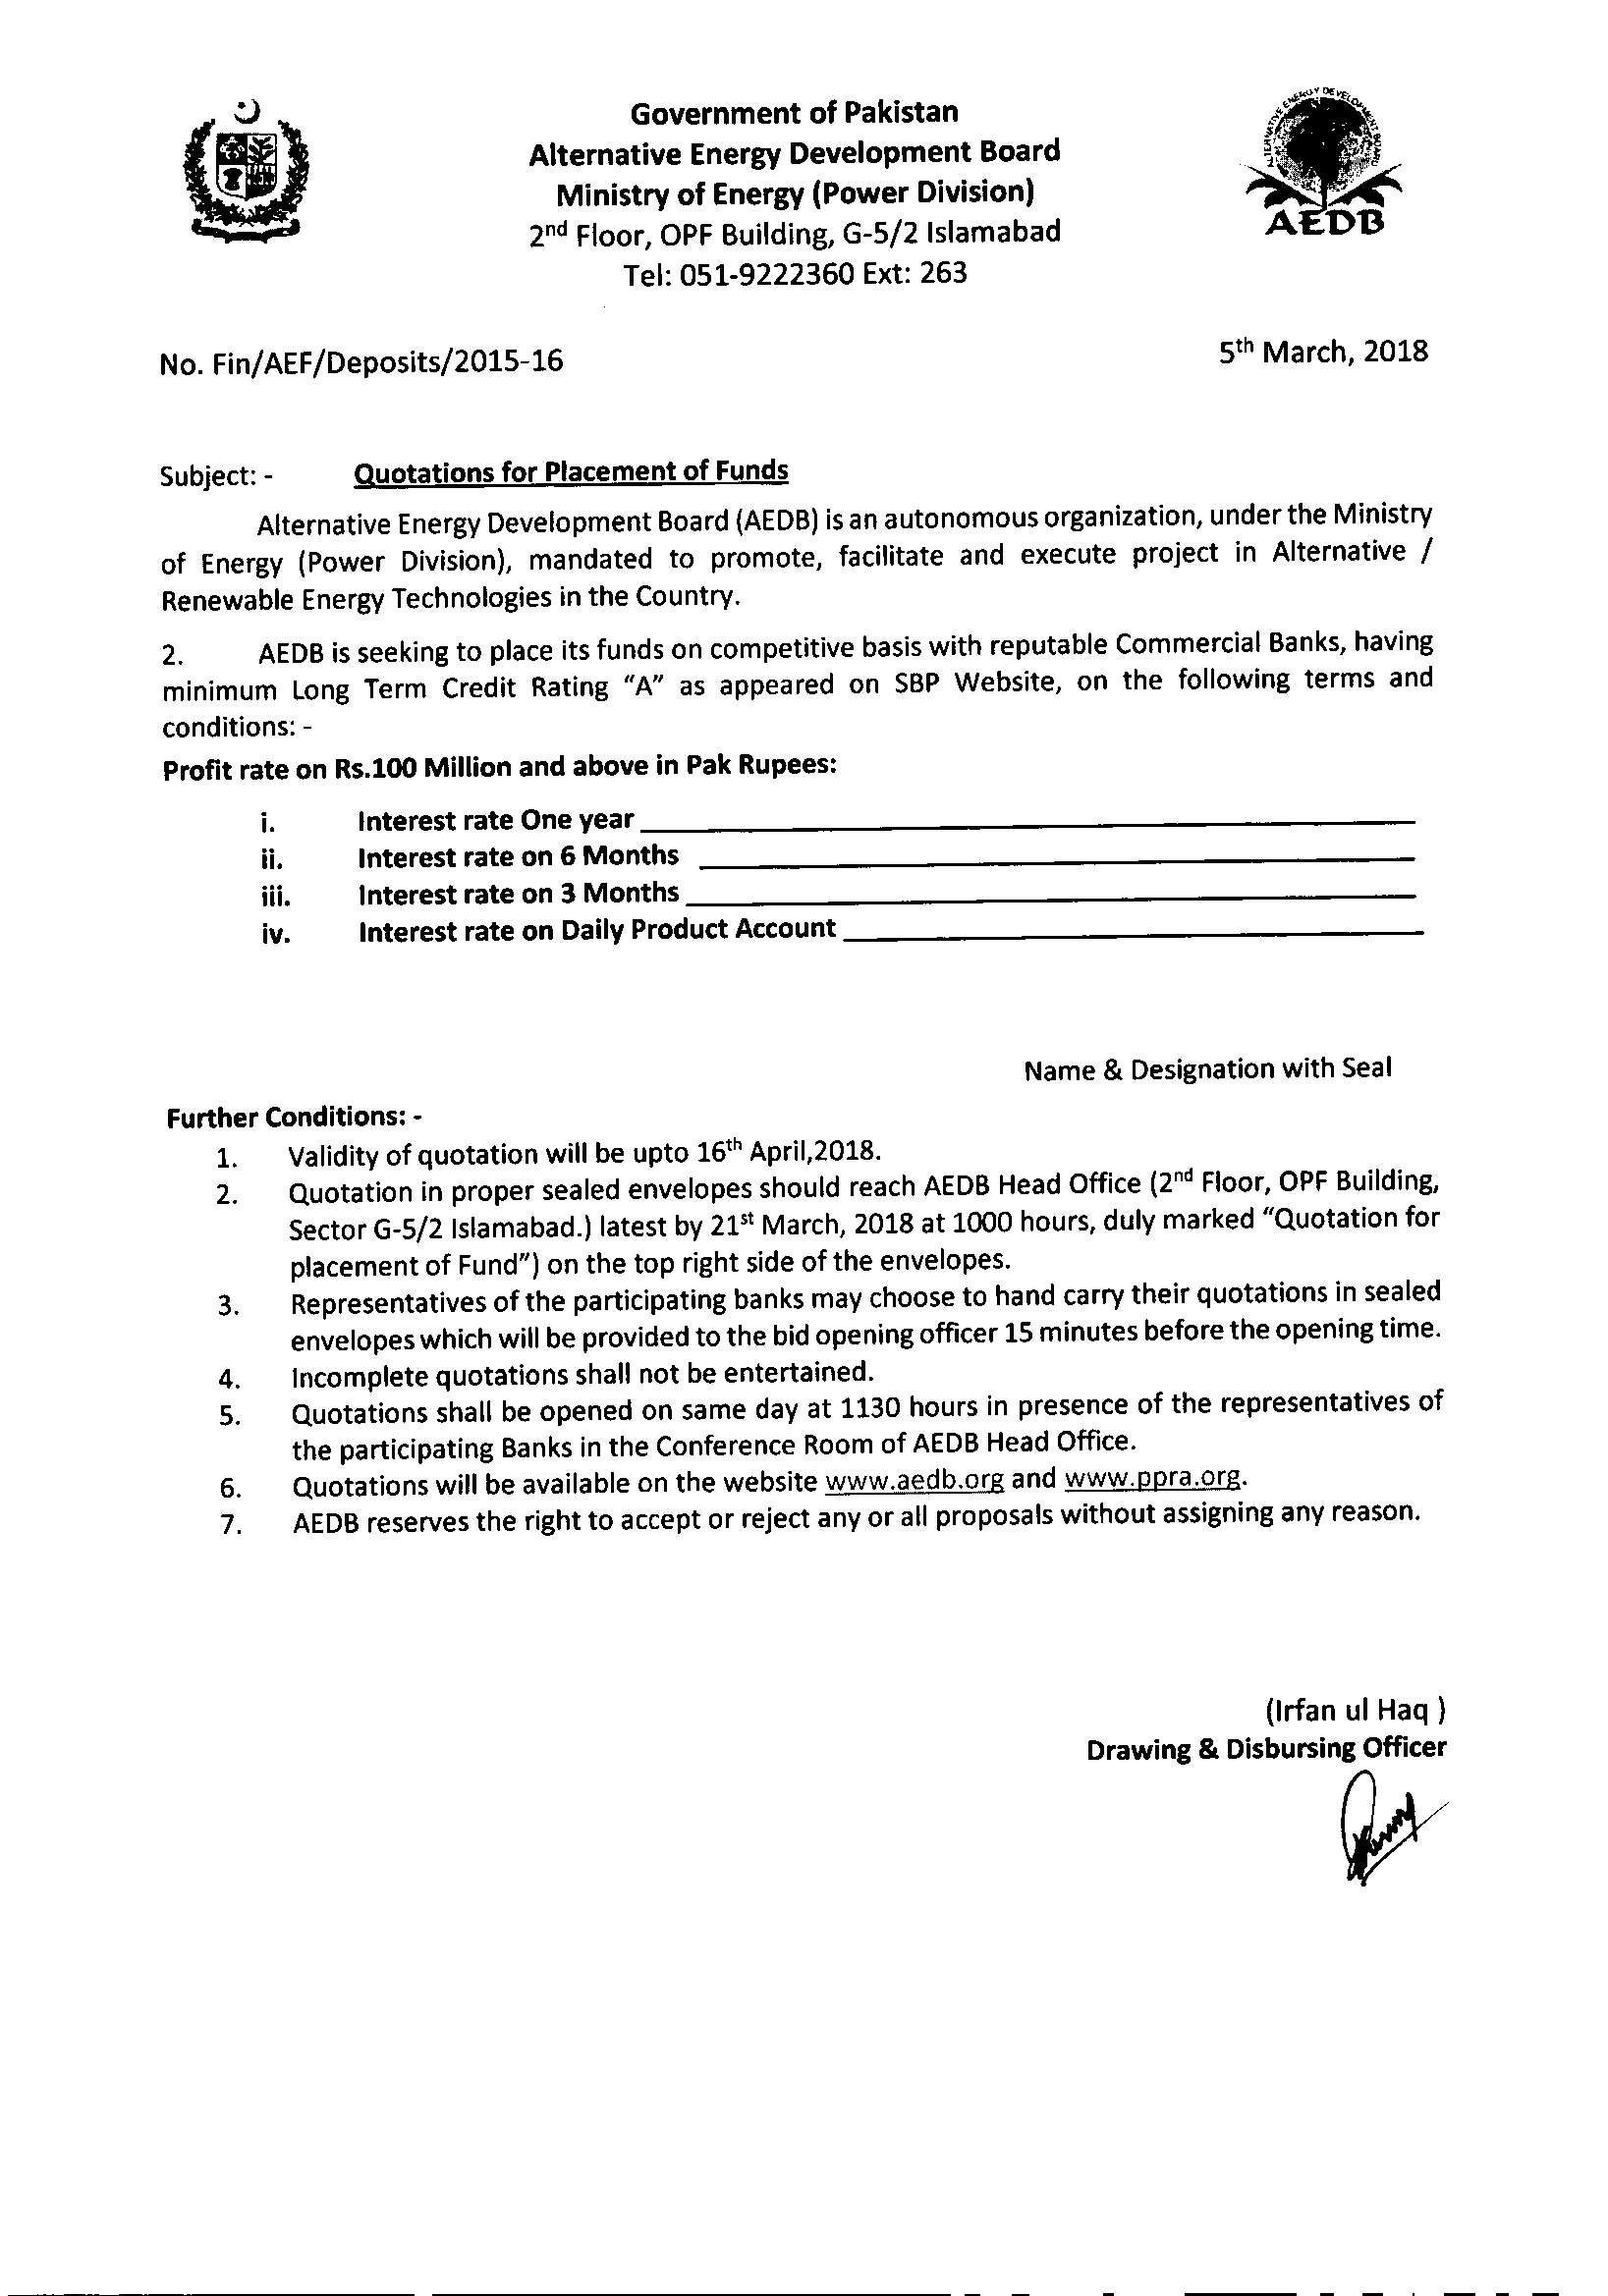 Quotation for placement of funds22018